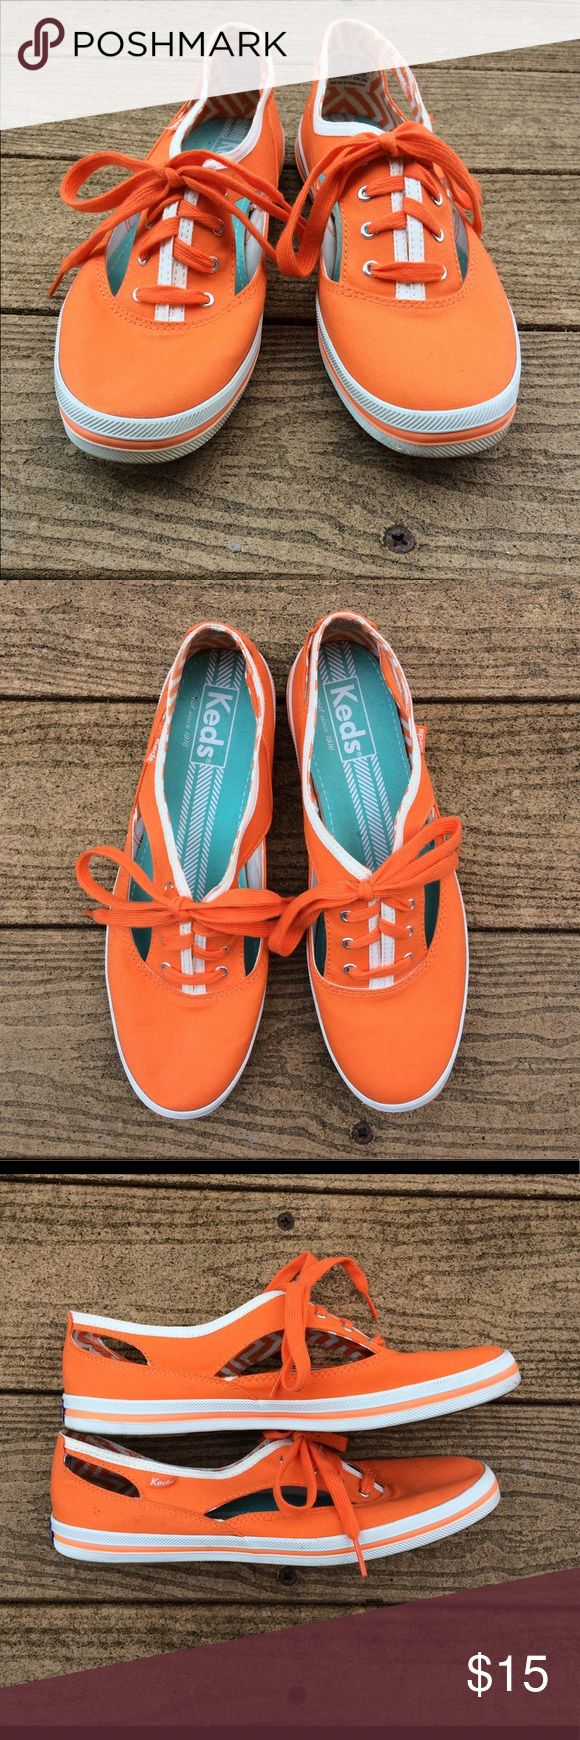 Keds cut-out orange sneakers Keds side cut-out orange sneakers. Great condition; some scuffs on sides (could be scrubbed off), very mild wear on soles (see photos). Worn once to a University of Tennessee football game (go Vols!). Keds Shoes Sneakers